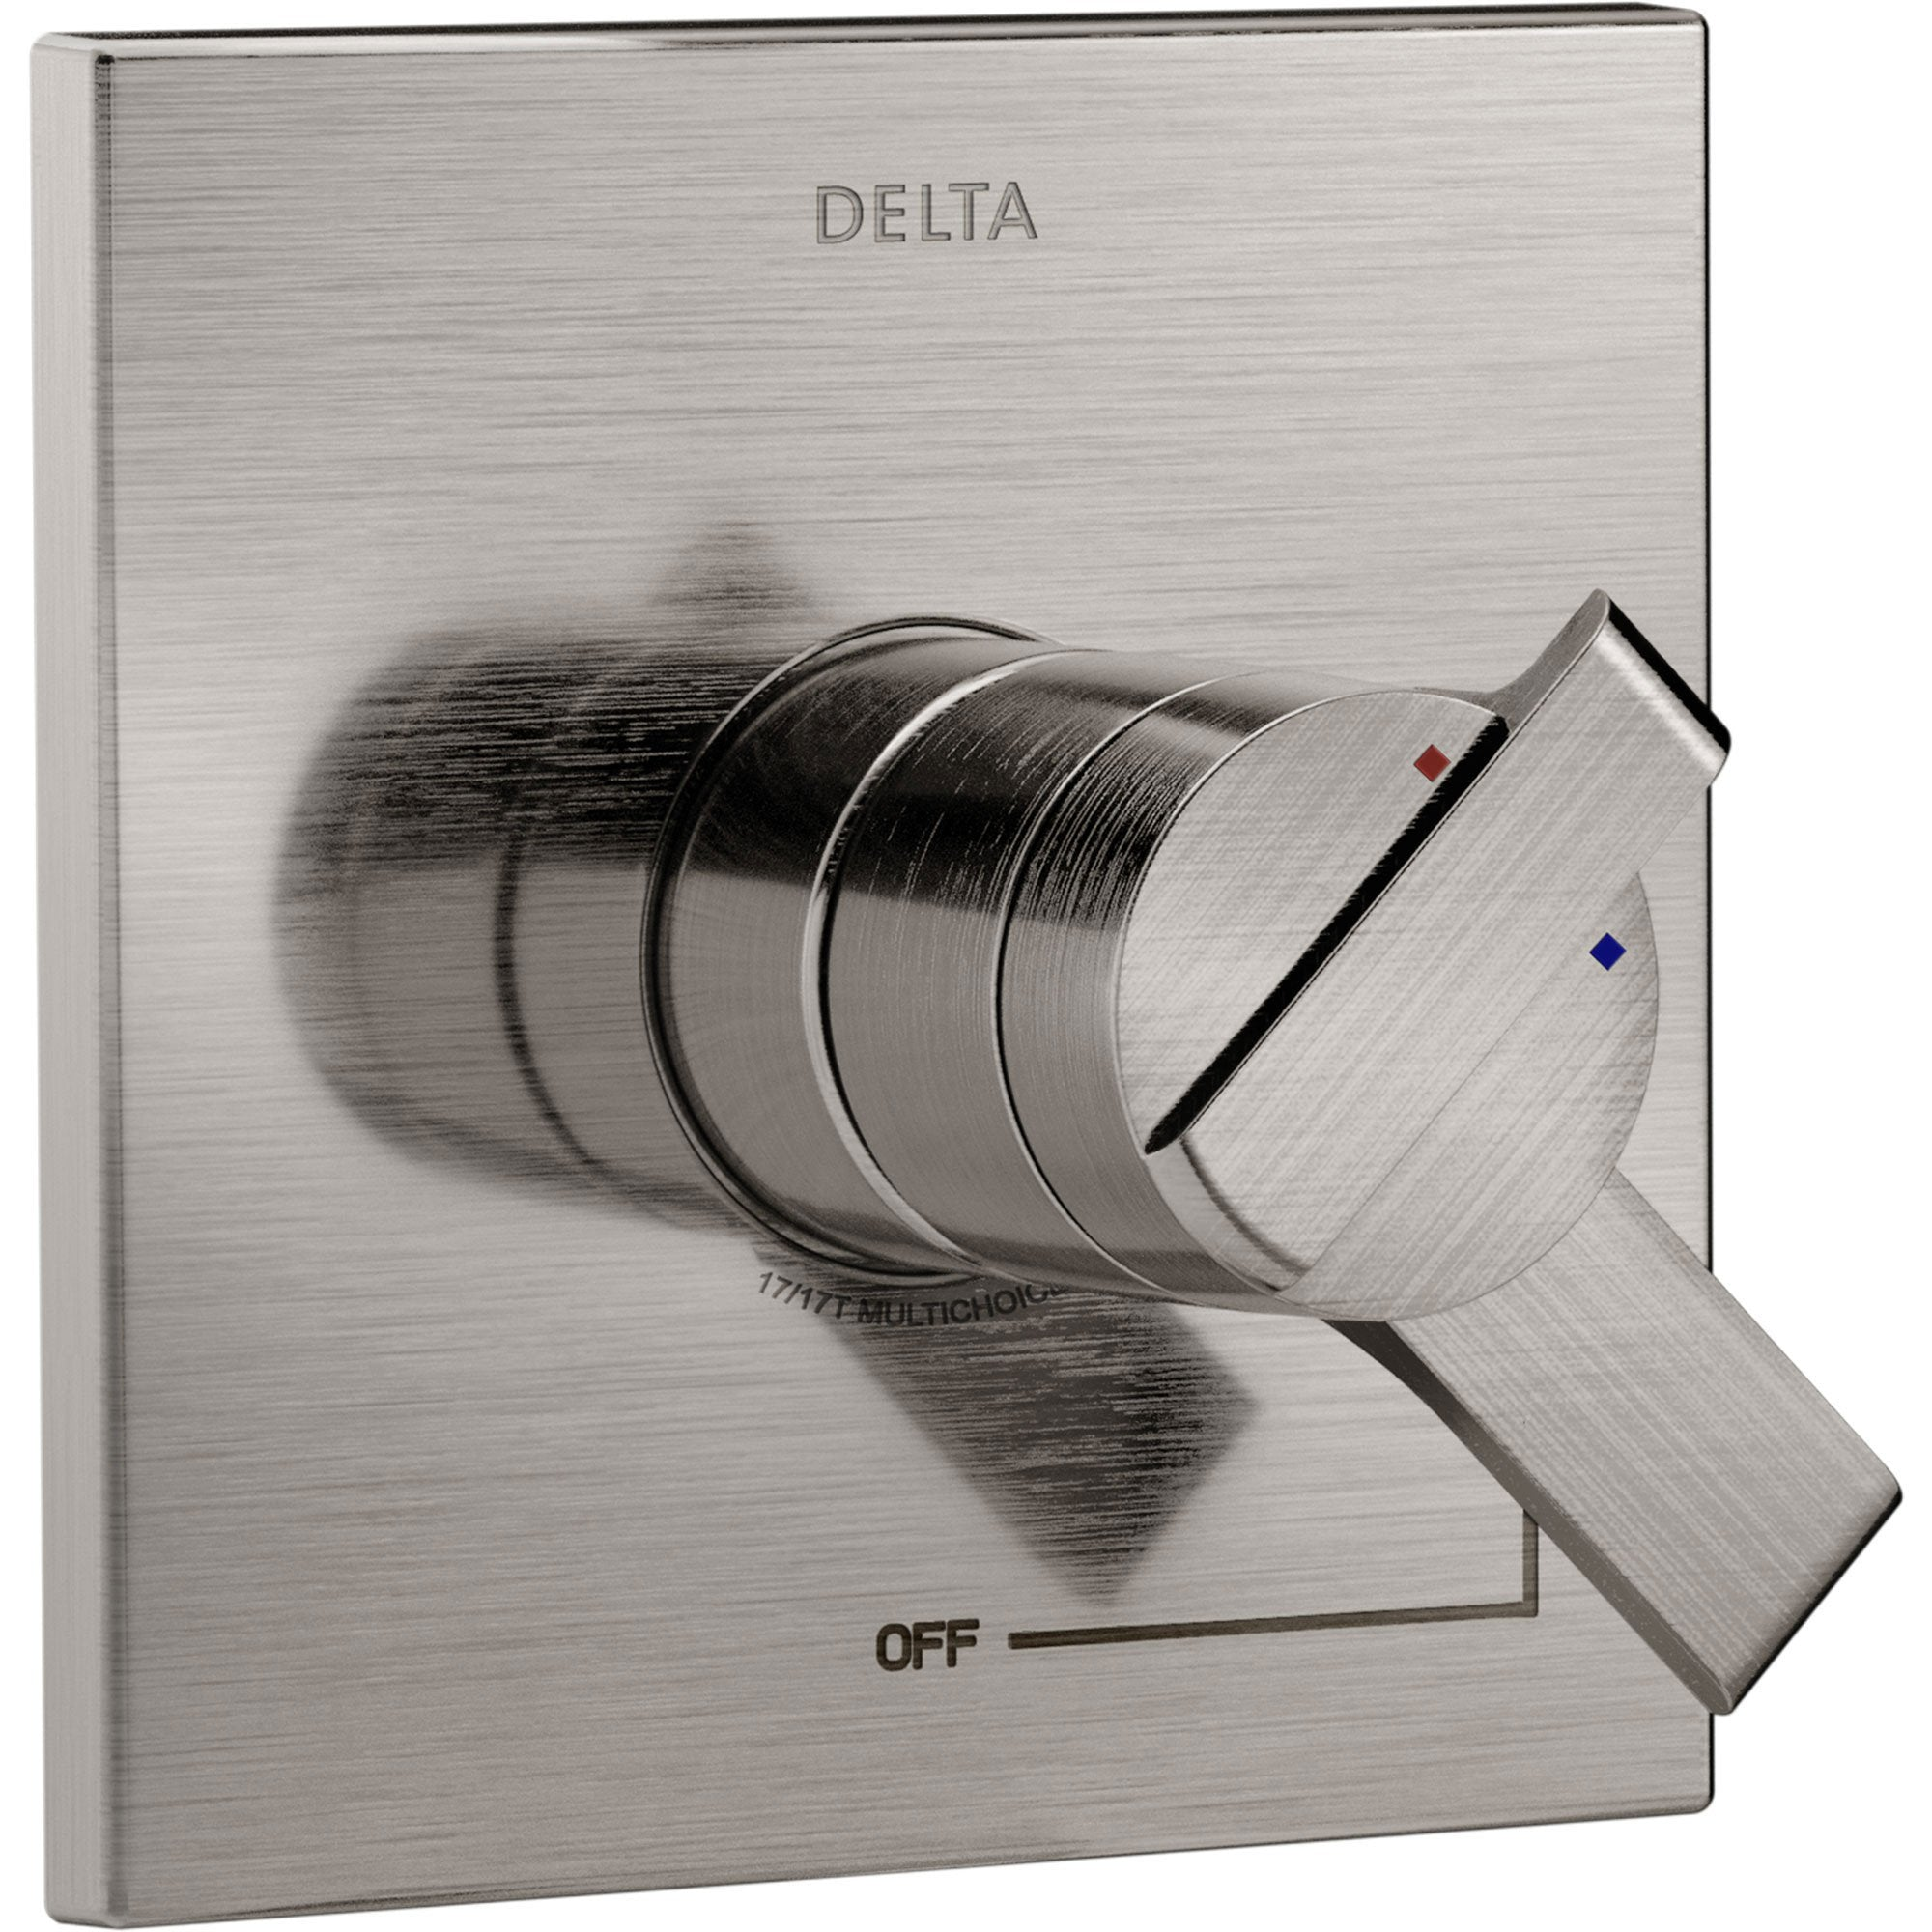 Delta Ara Modern Stainless Steel Finish 17 Series Dual Temperature and Pressure Shower Faucet Control INCLUDES Rough-in Valve with Stops D1149V